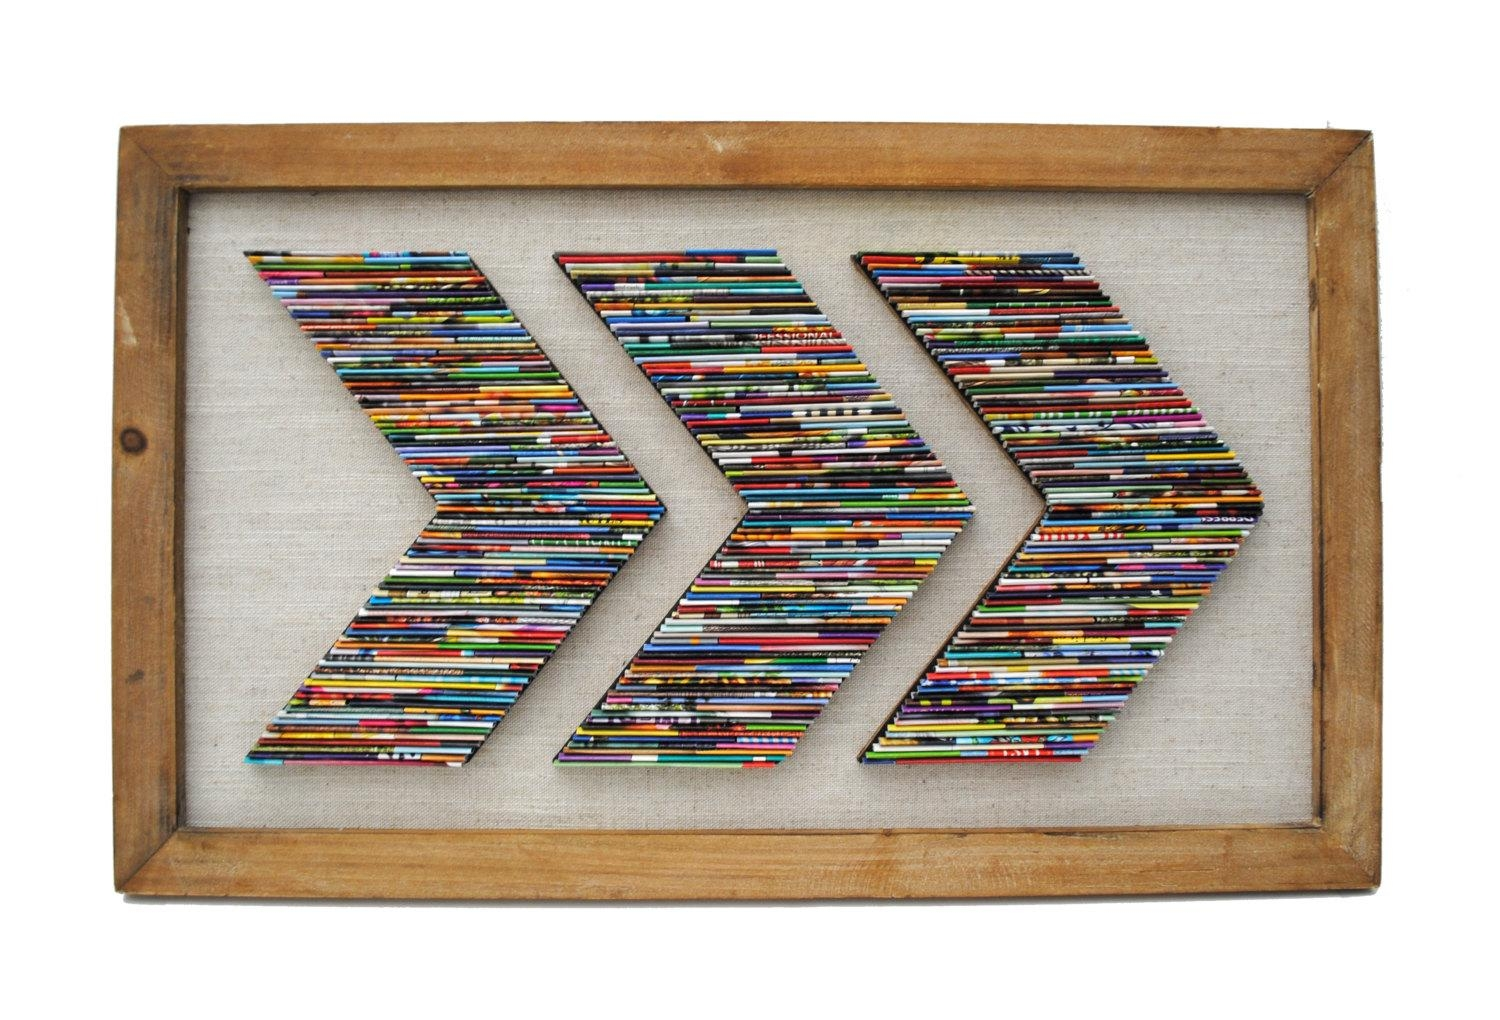 Chevron Recycled Magazine Wall Art Made From Recycled Magazines Throughout Recycled Wall Art (View 11 of 20)